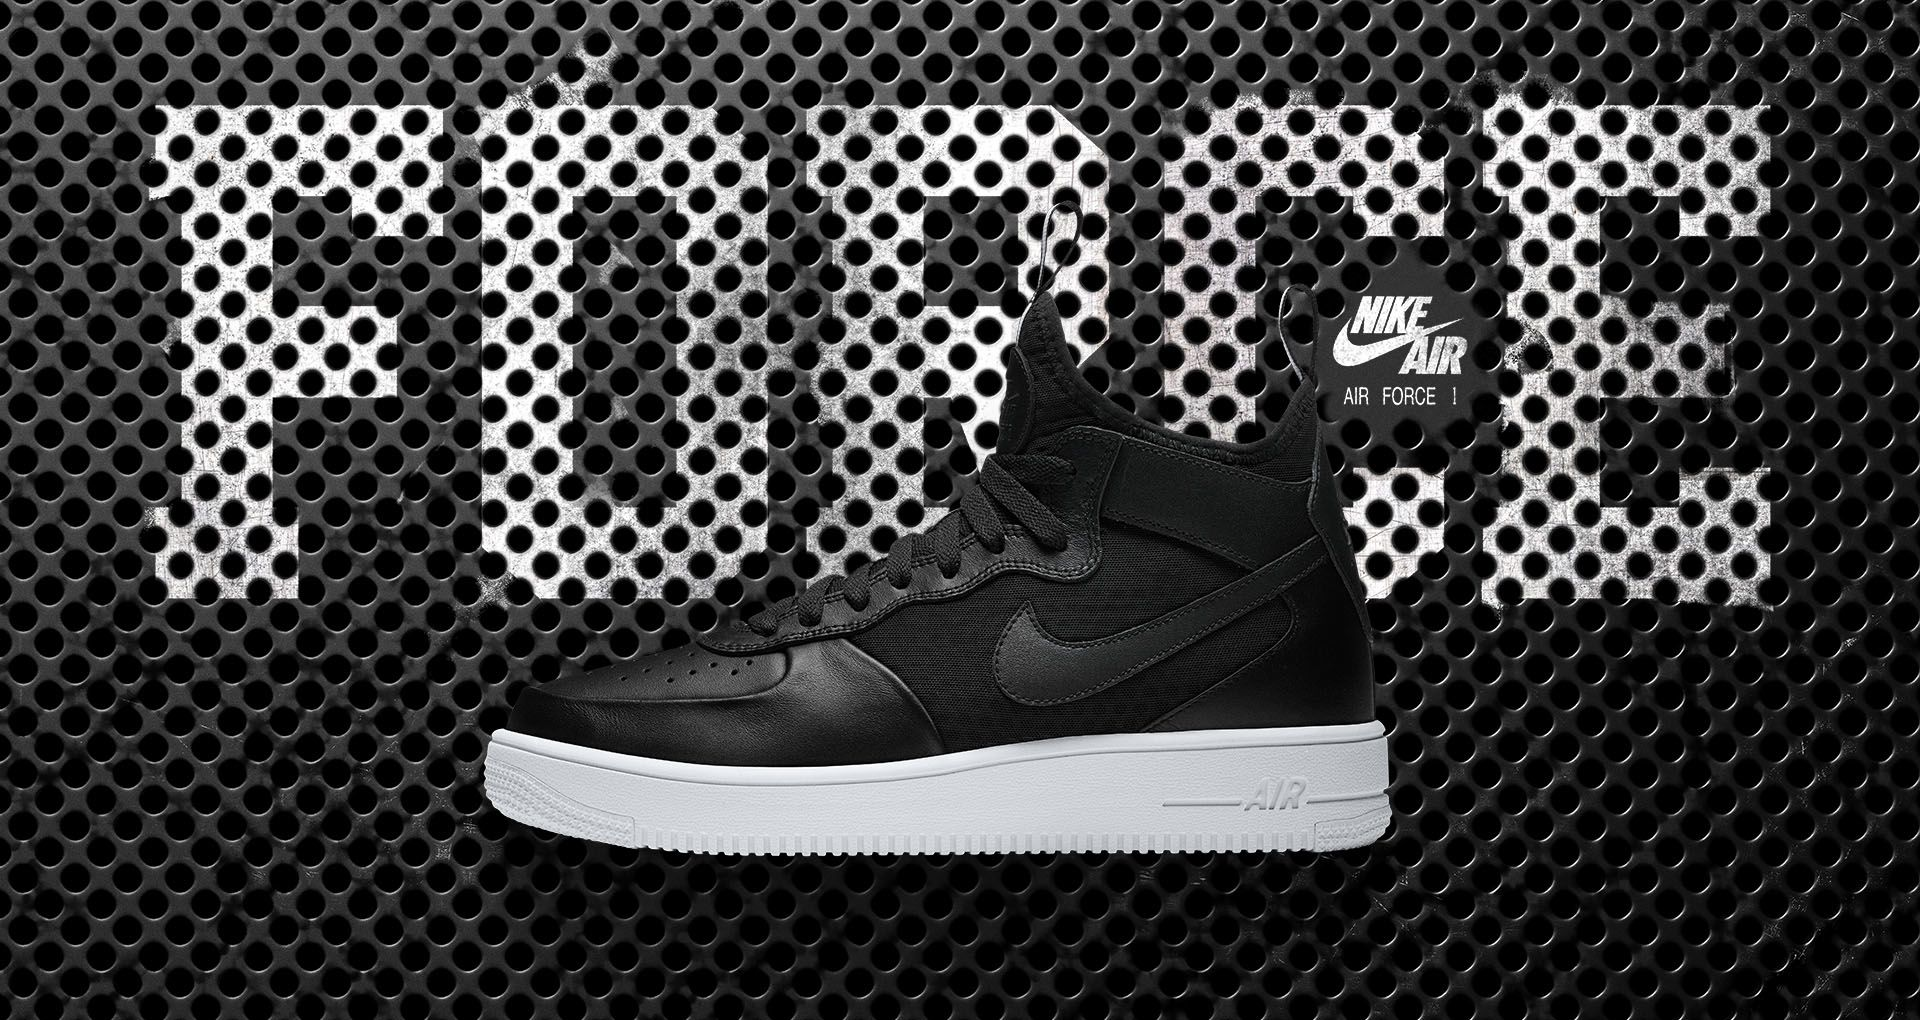 reputable site 3ae95 7206d AIR FORCE 1 ULTRA FORCE MID